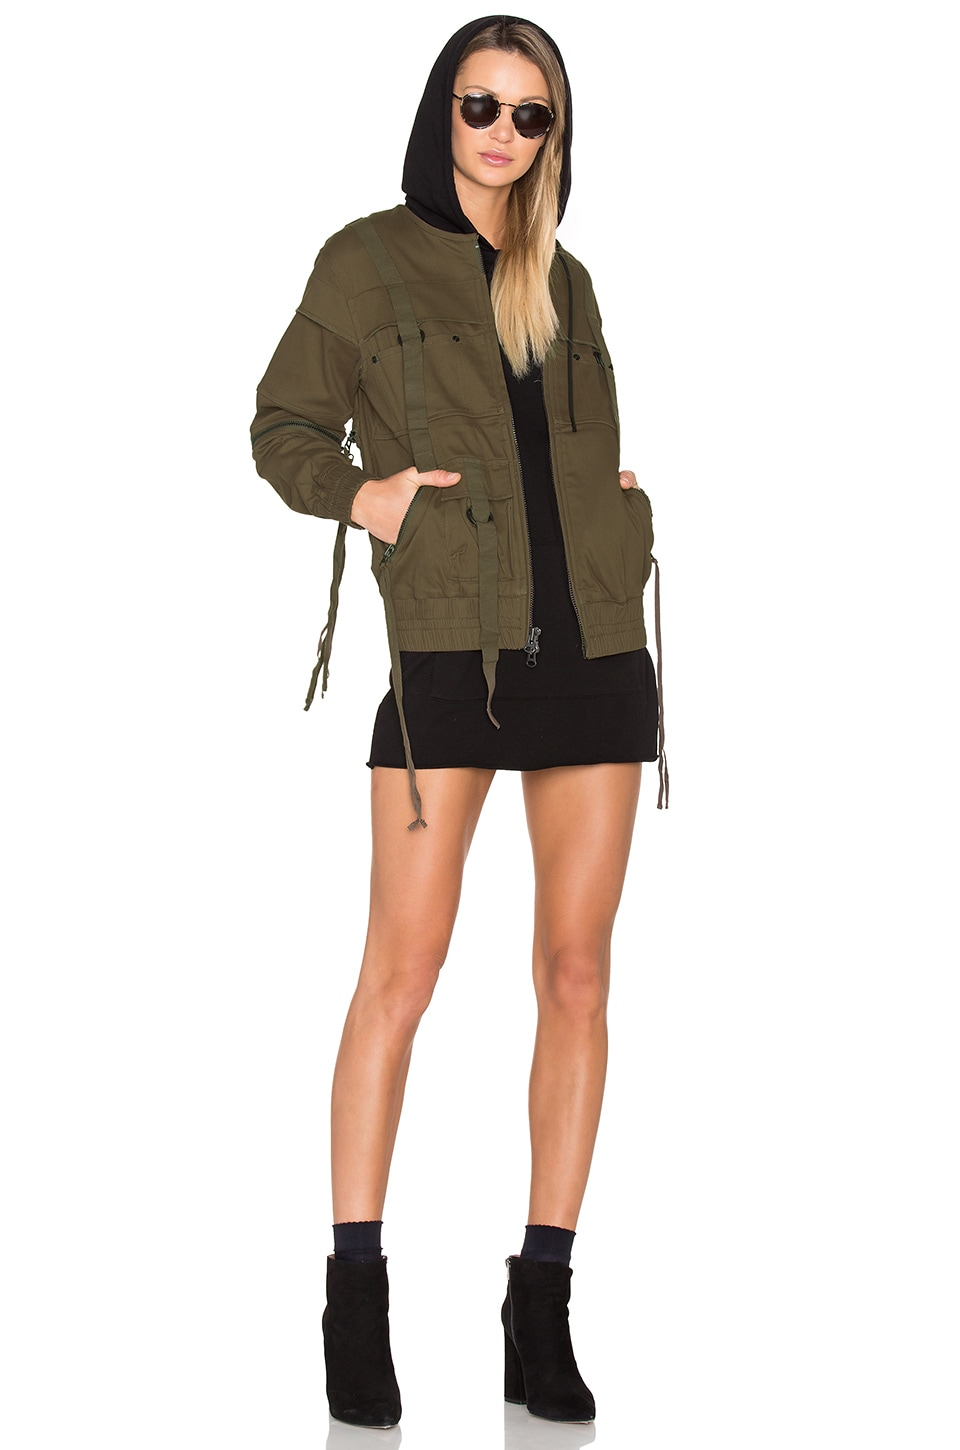 x Revolve Reject Jacket by Publish